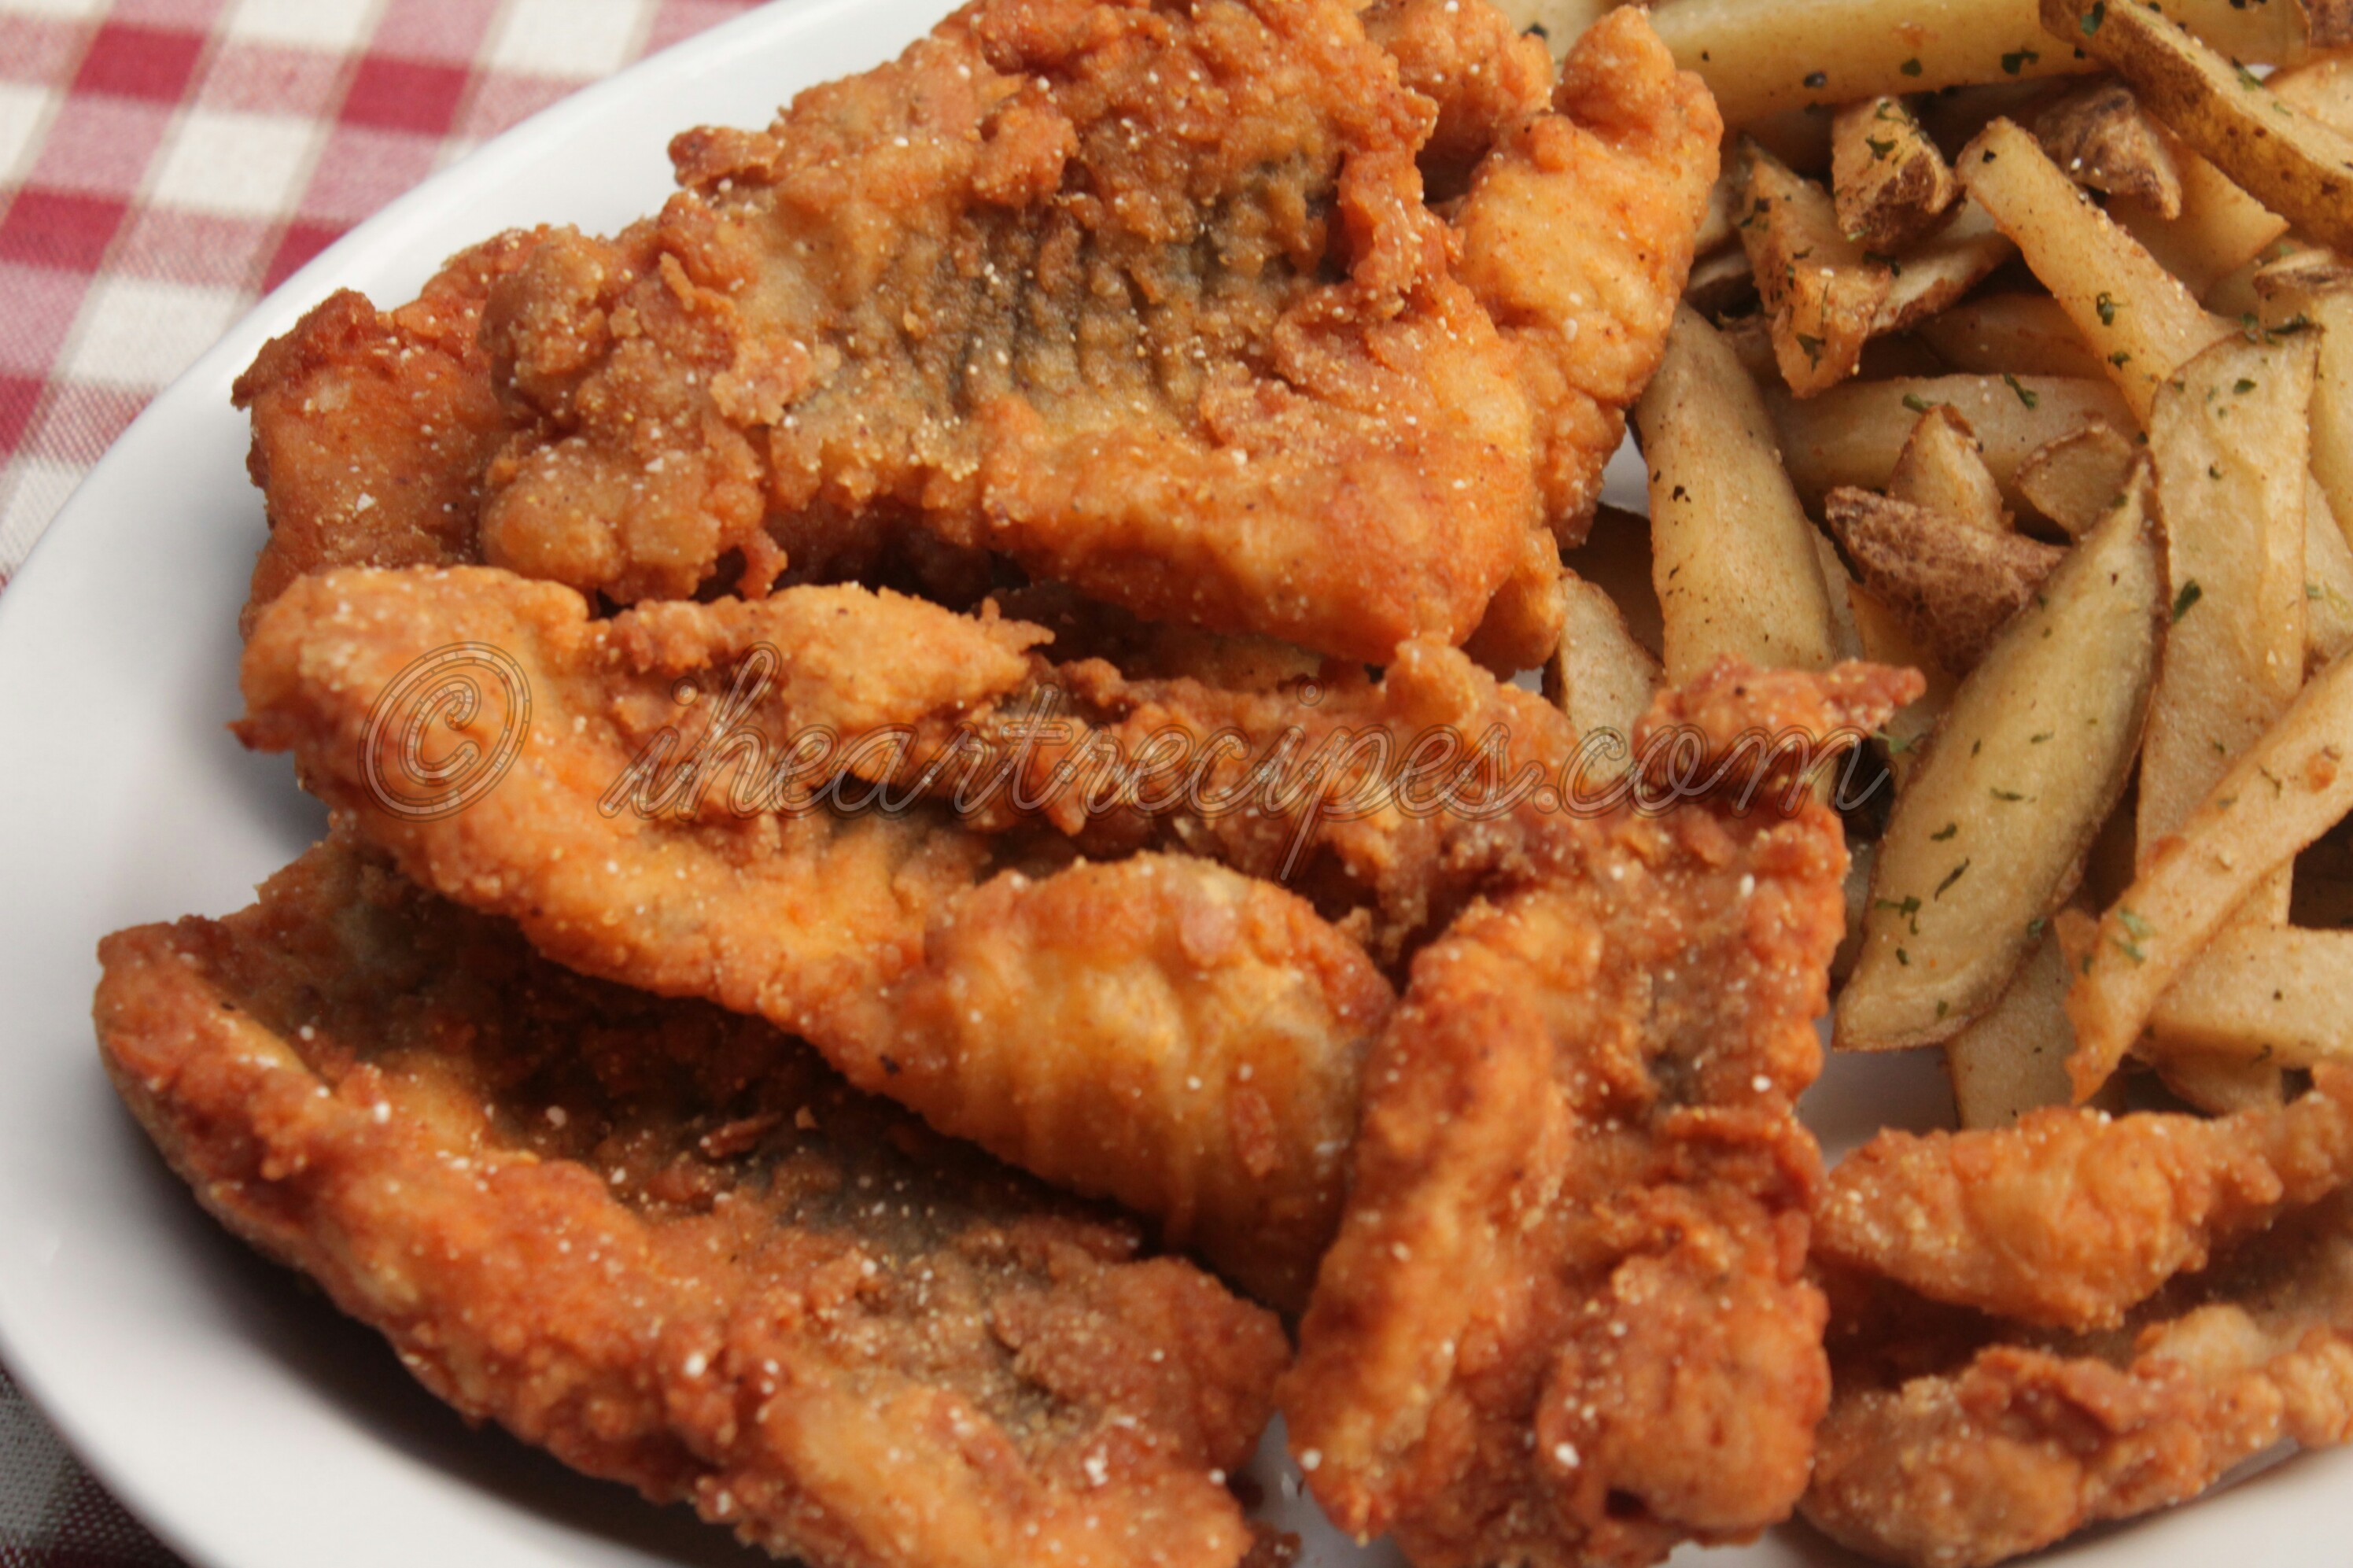 If you don't like spicy food, this fried catfish can be easily modified.